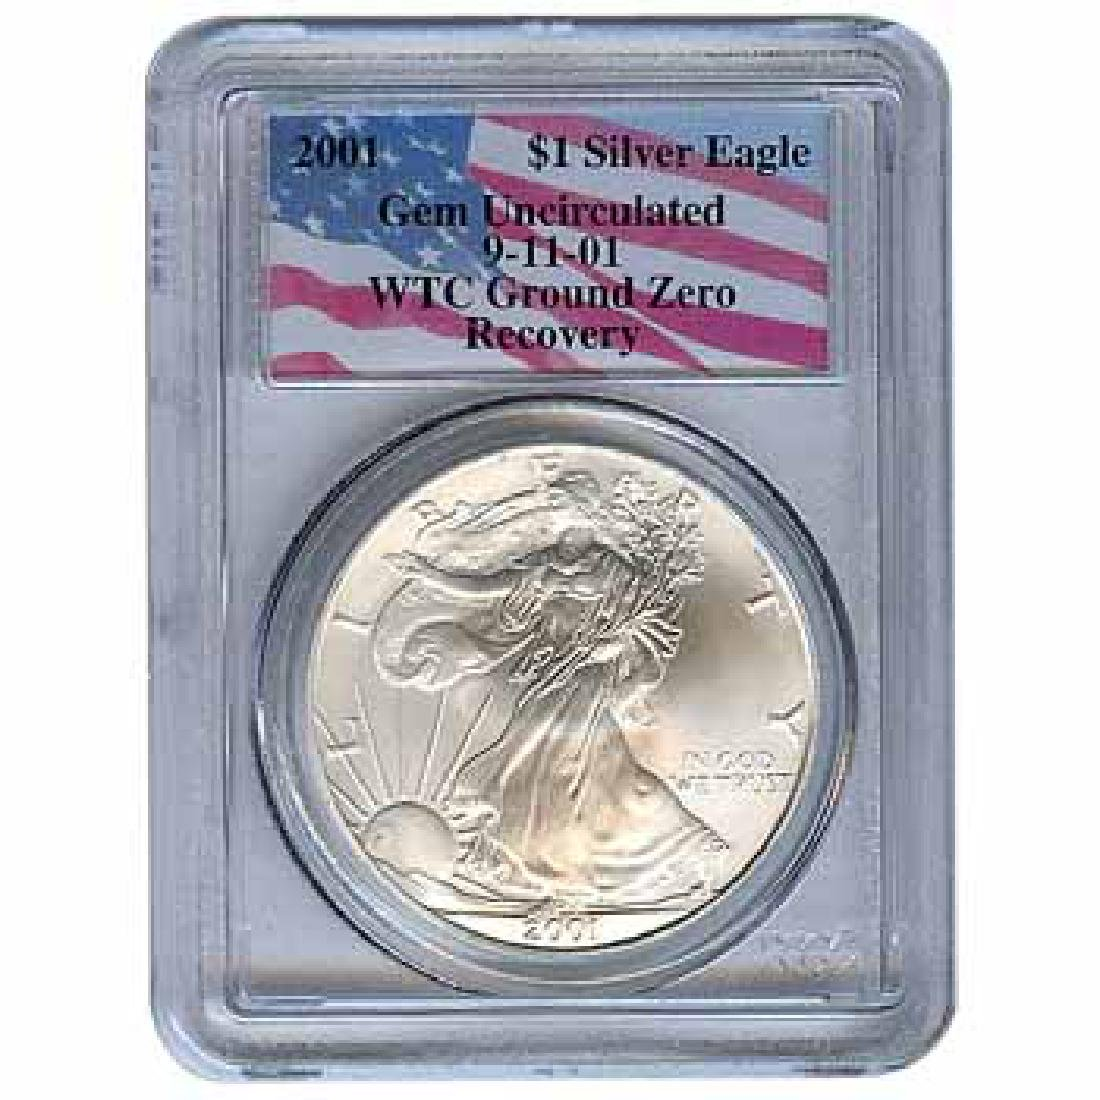 Certified Silver Eagle WTC Ground Zero Recovery 2001 Ge